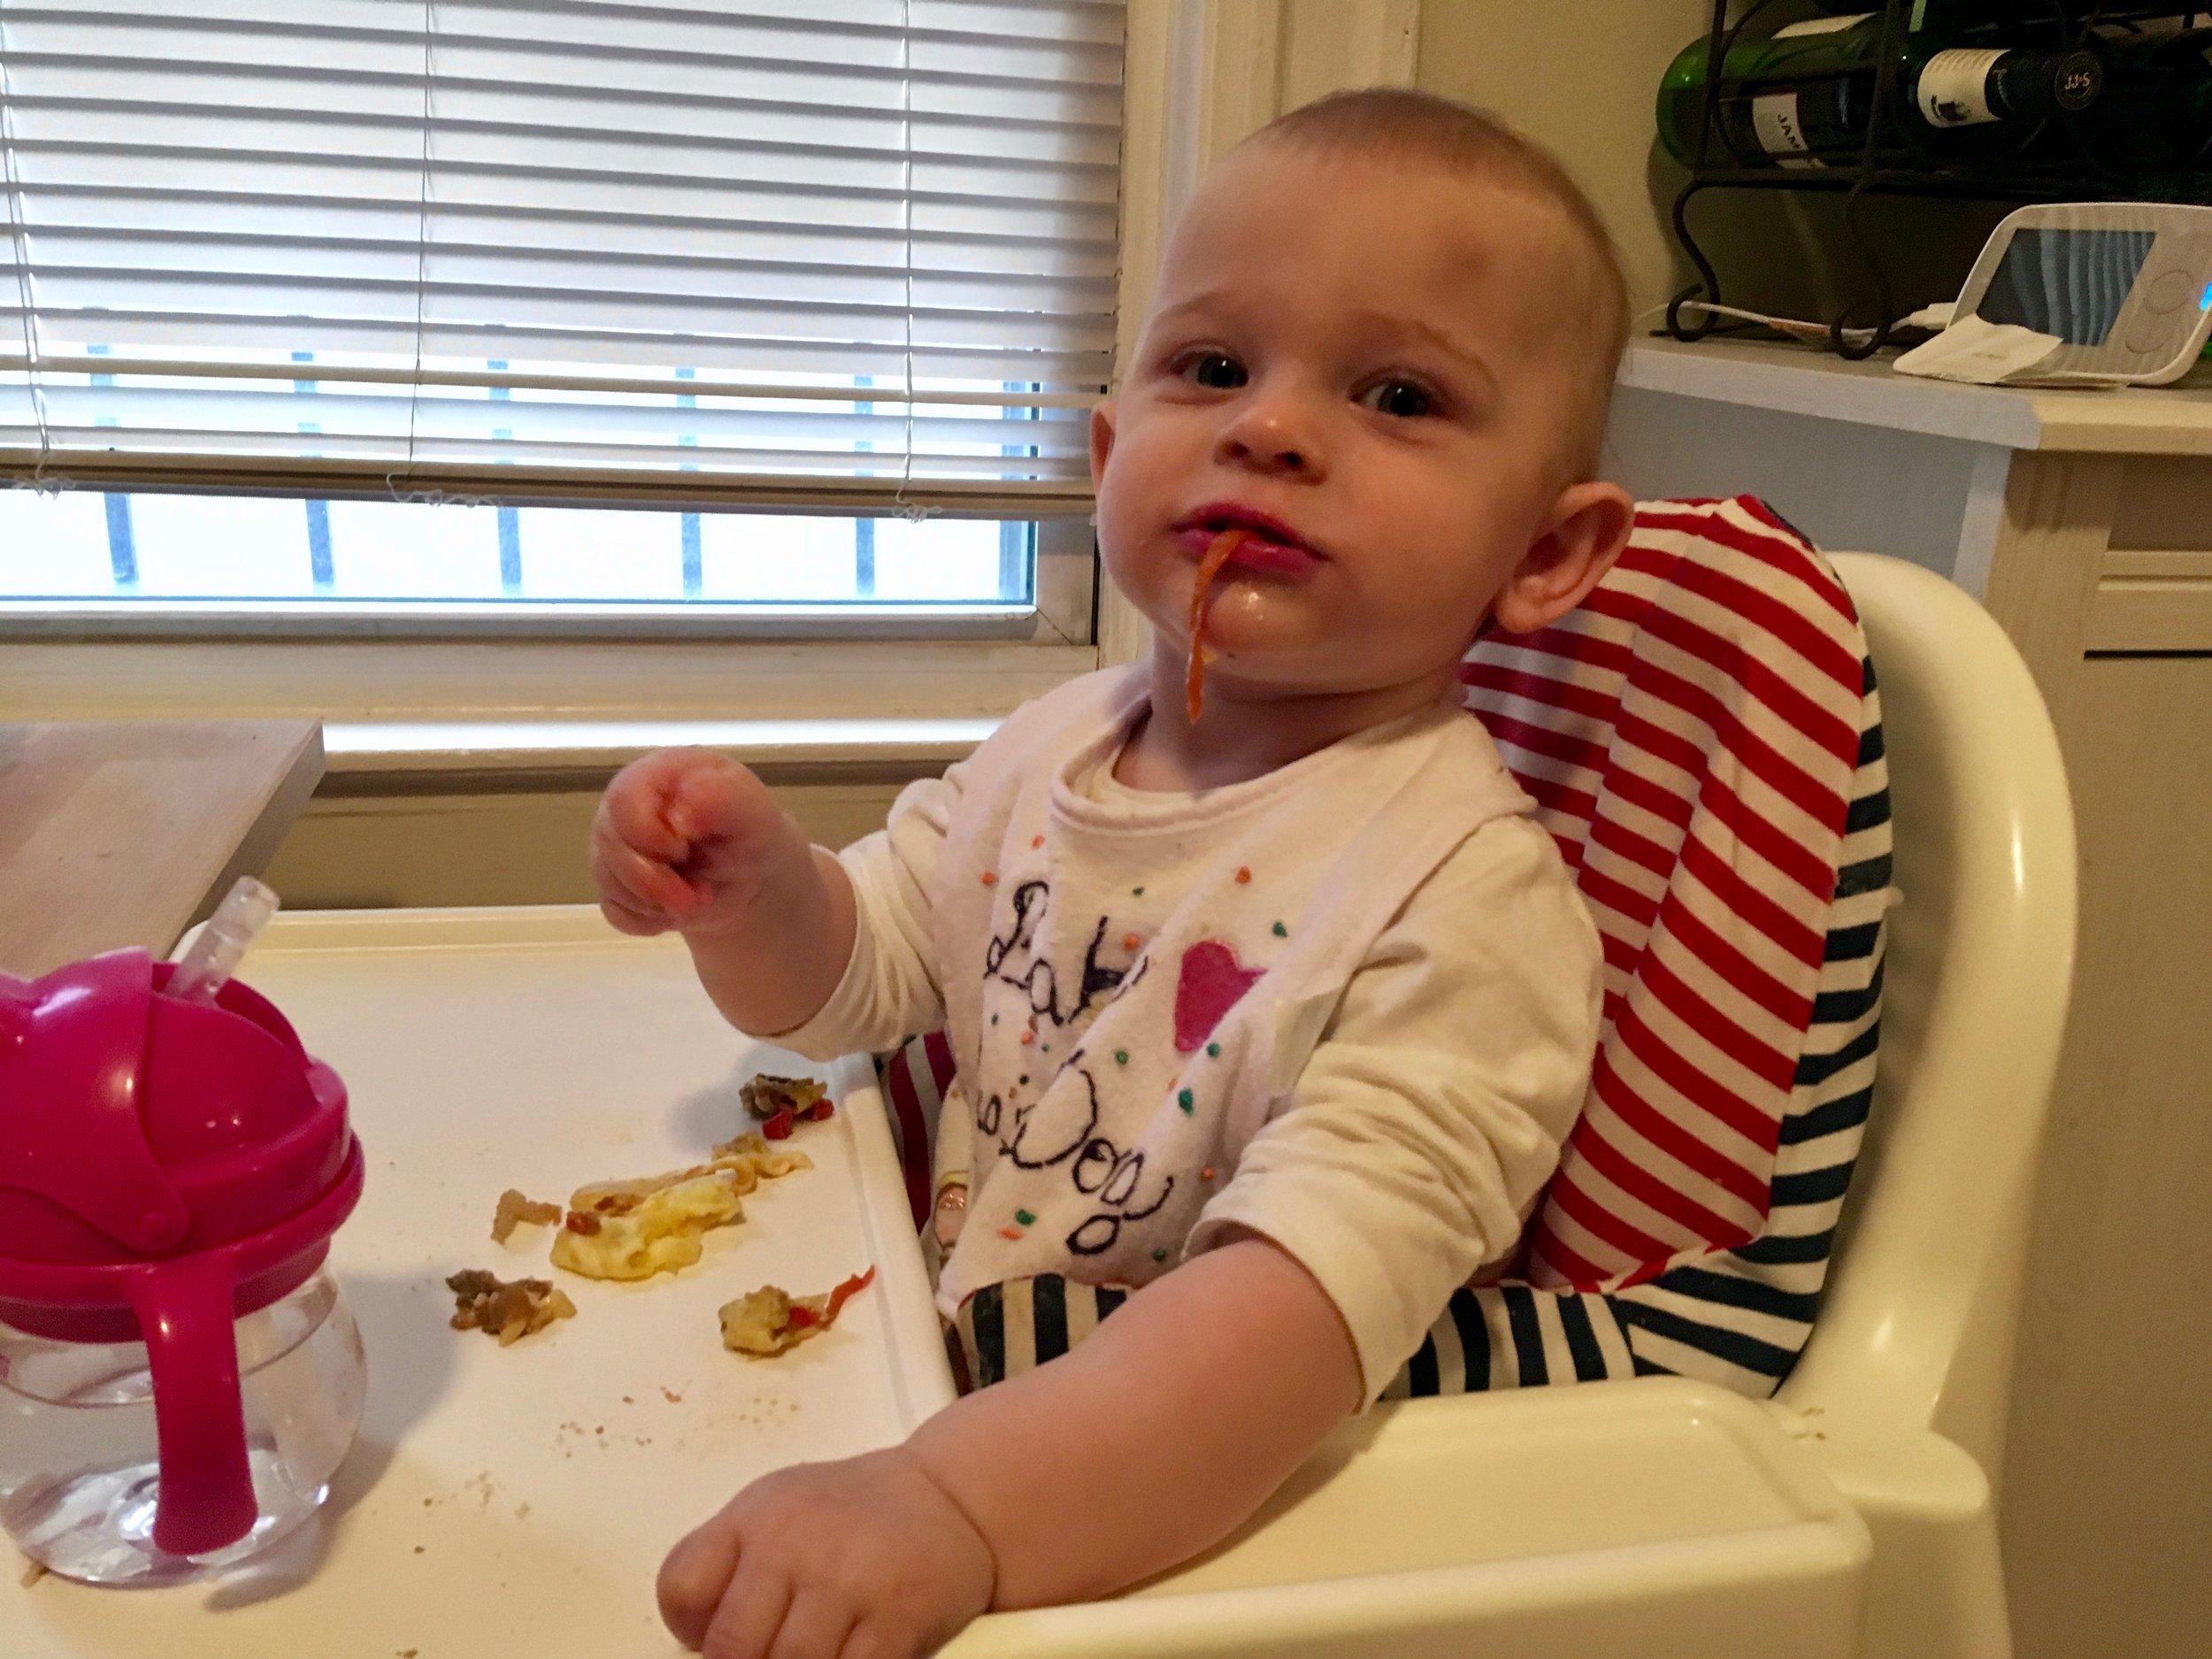 """This 'chef in training' says """"MORE PEPPERS!"""""""